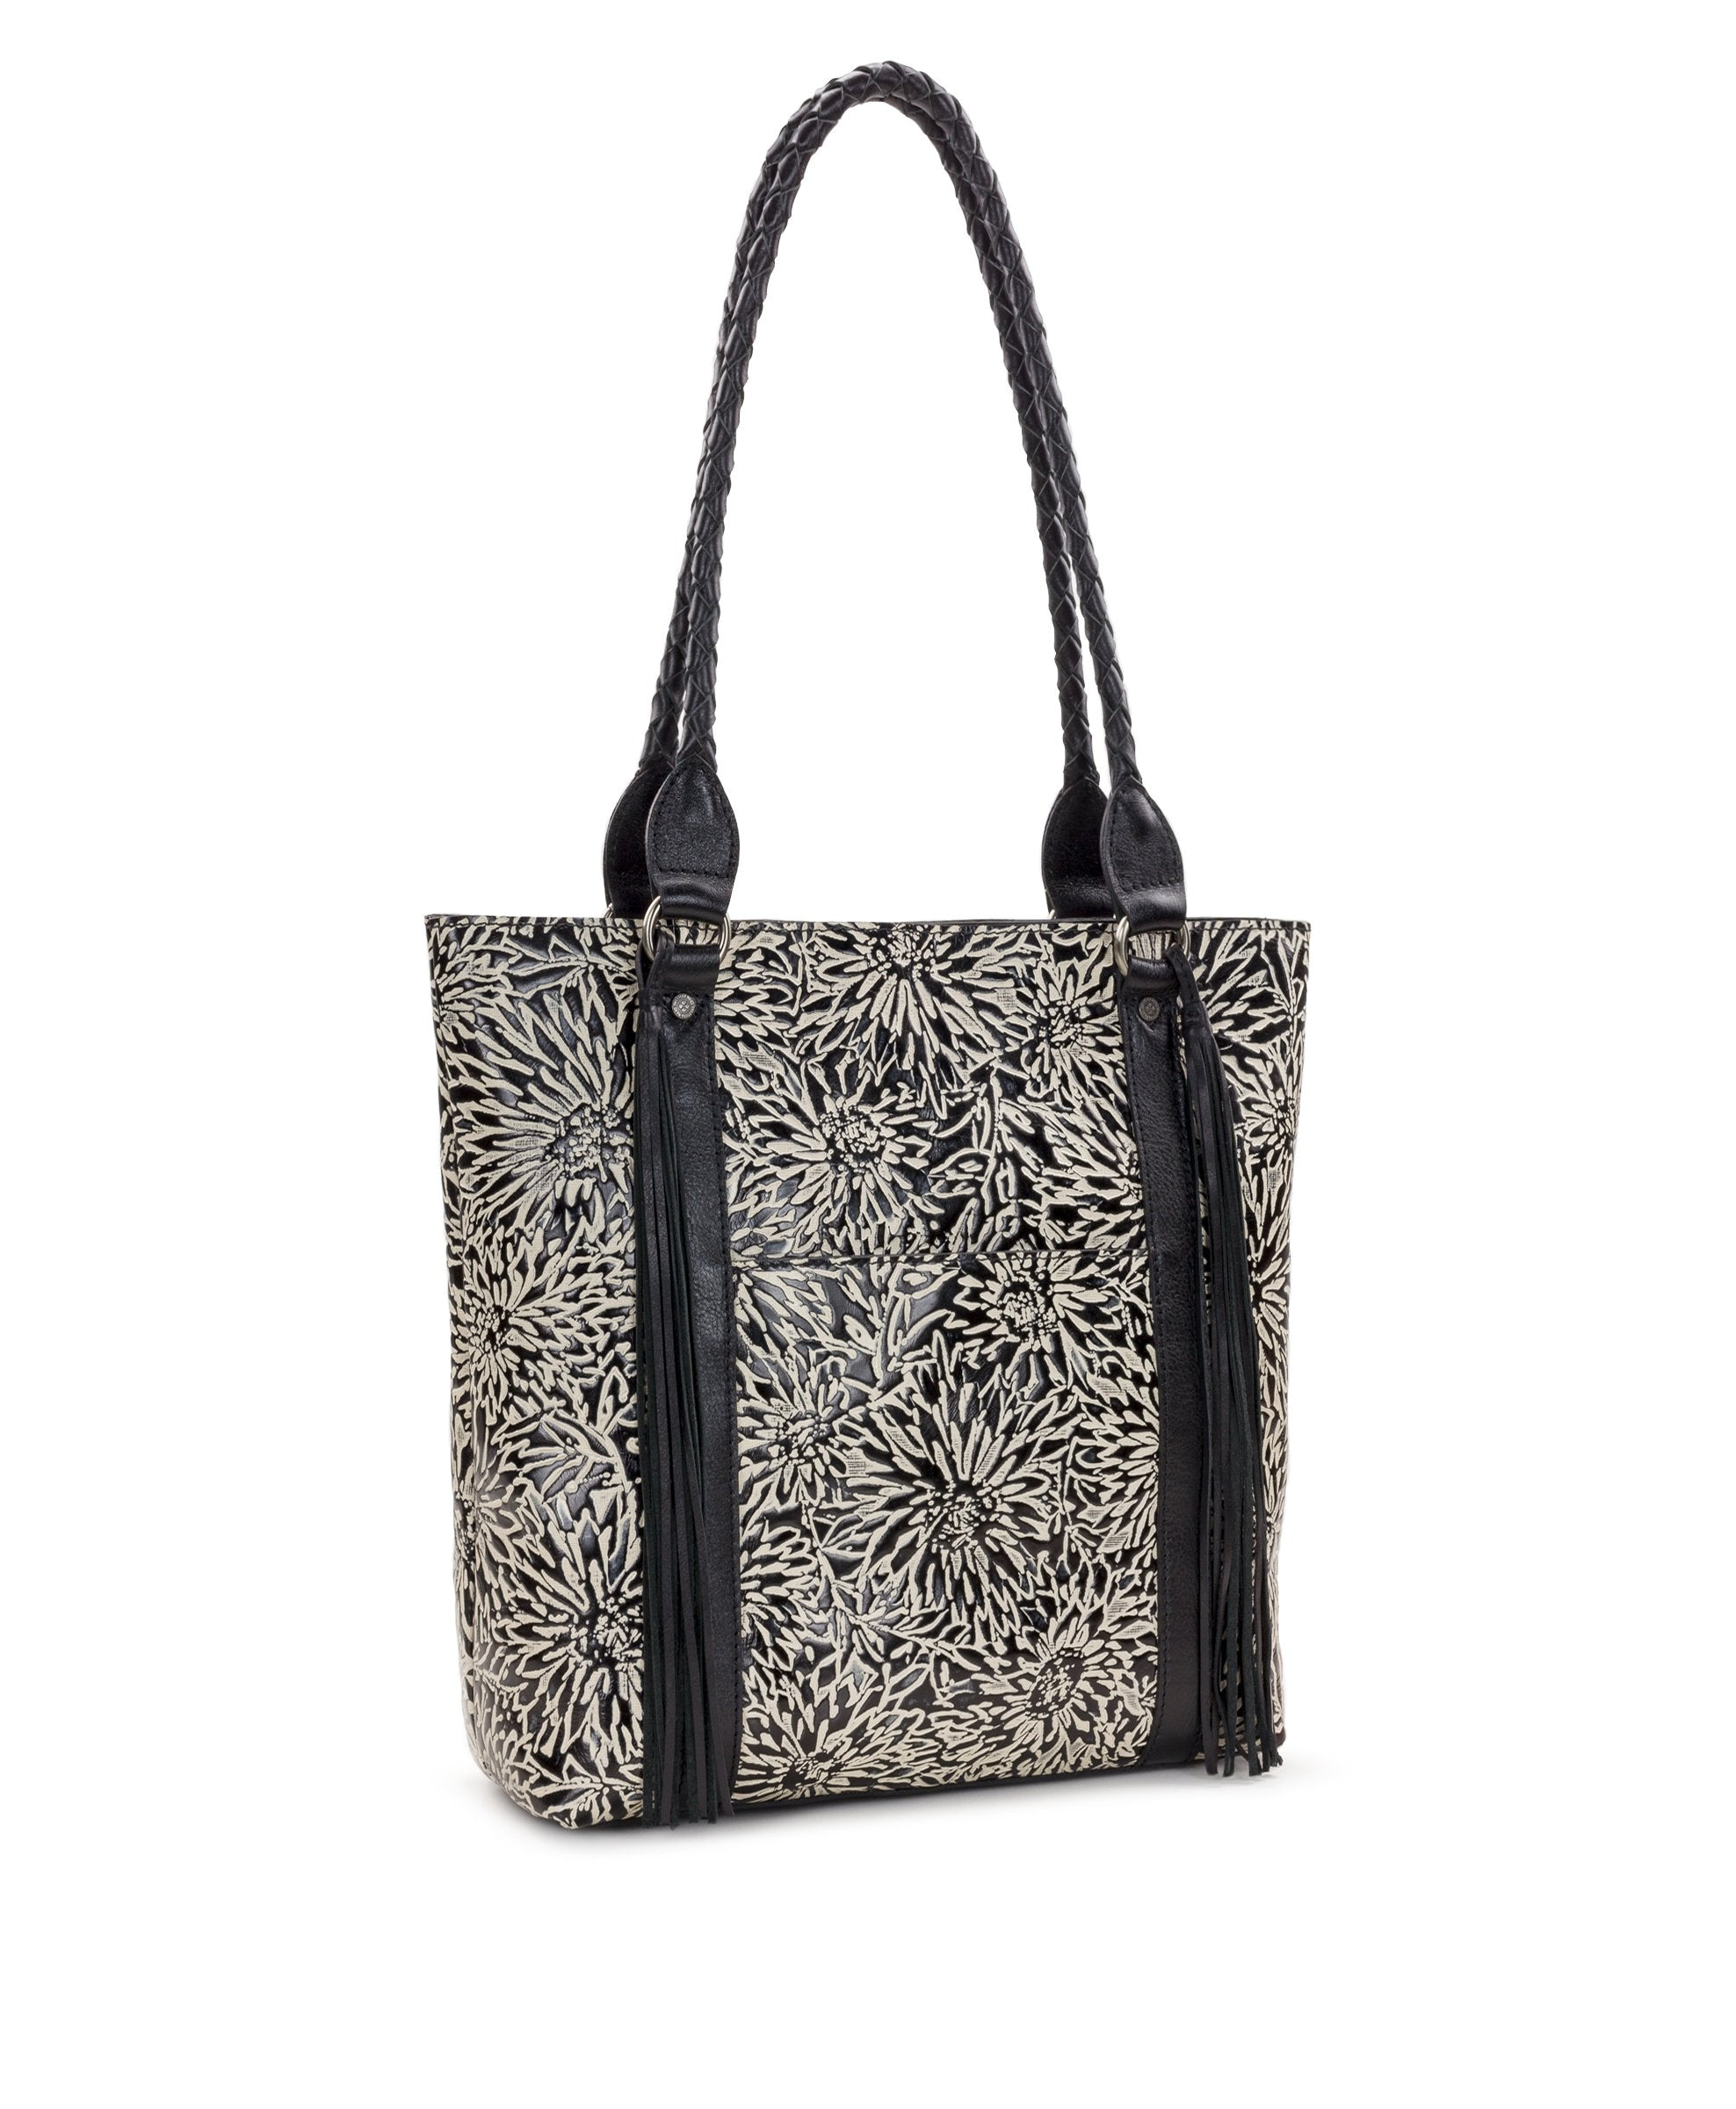 Rena Tote - Sunflower Tooling 3